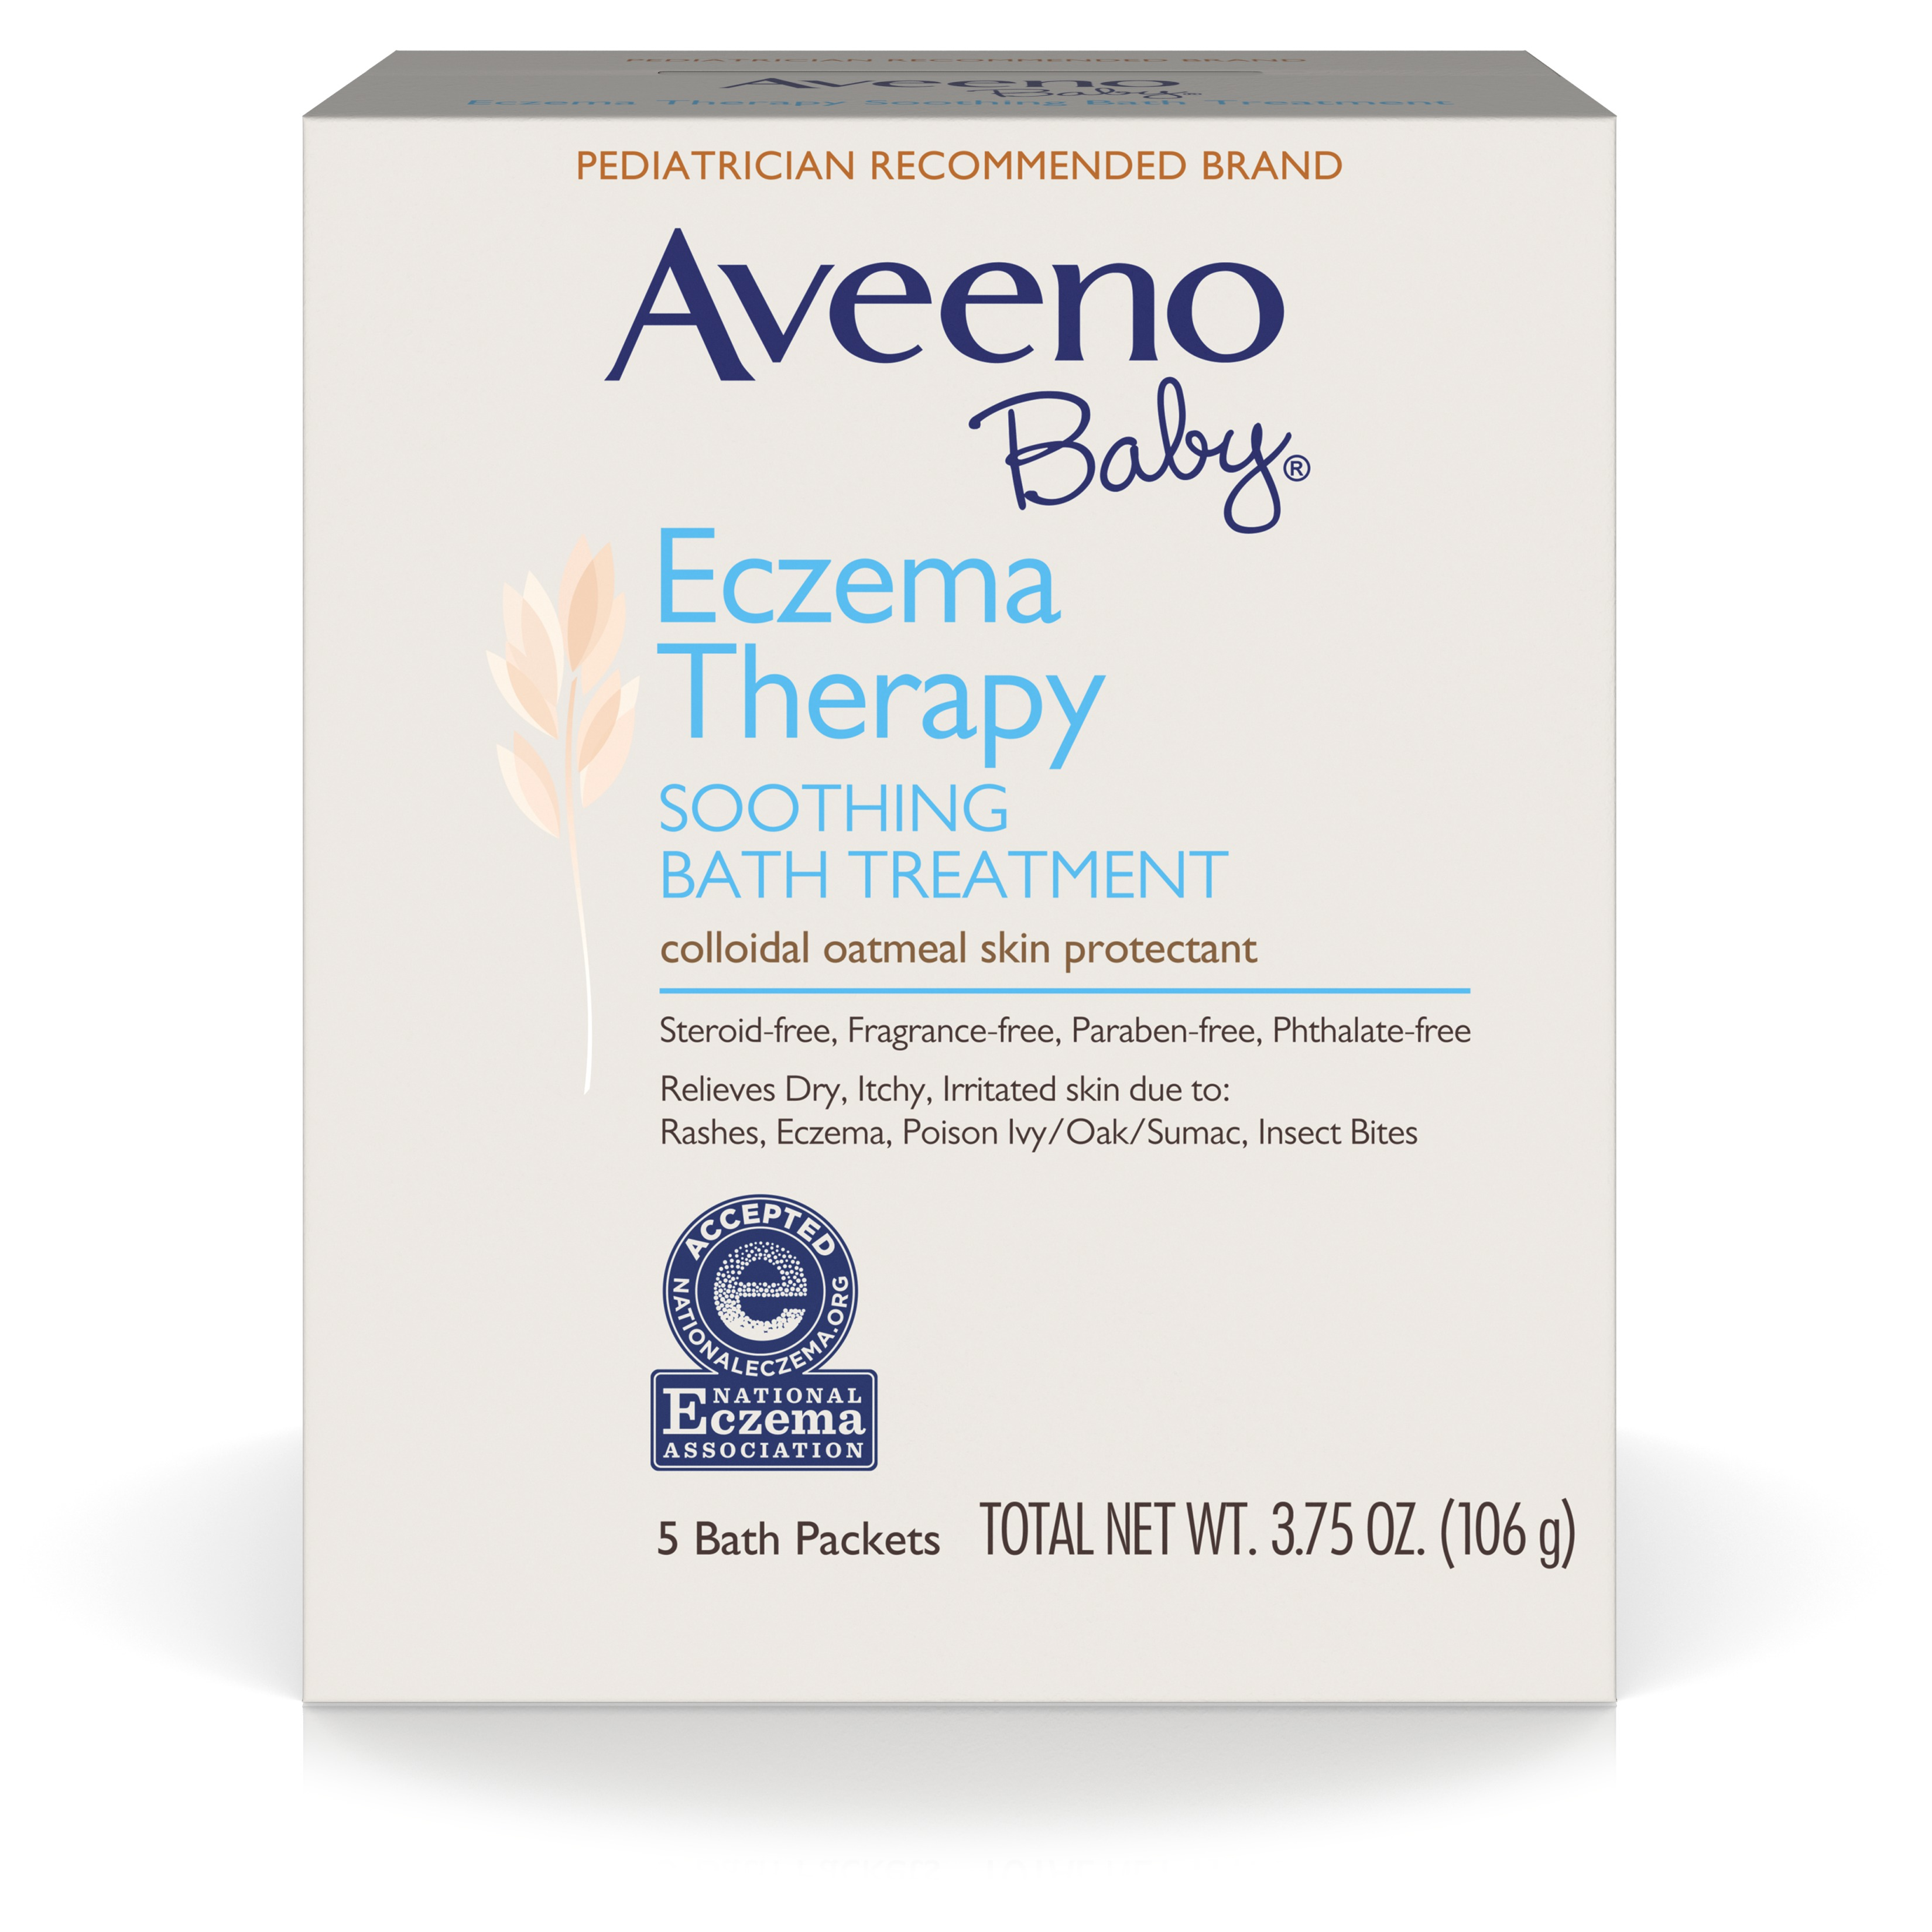 Aveeno Baby Eczema Therapy Soothing Bath Treatment with Natural Oatmeal, 5 ct. by Aveeno